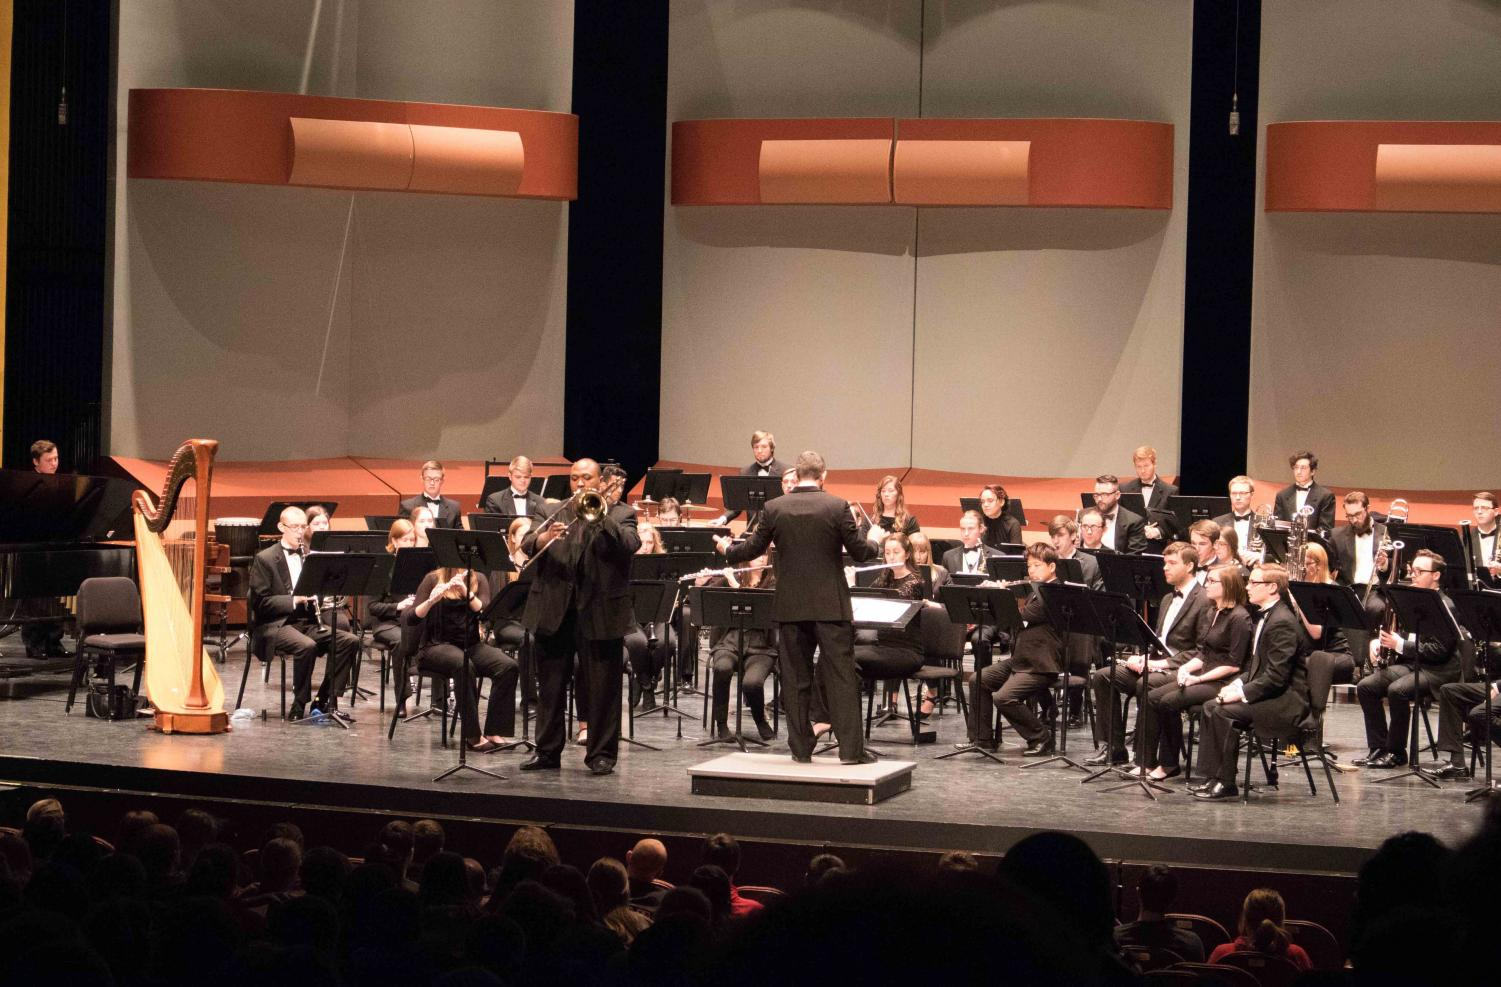 On Friday, Feb 9, the Northern Iowa Win Ensemble and UNI Symphonic Band performed at the GBPAC.